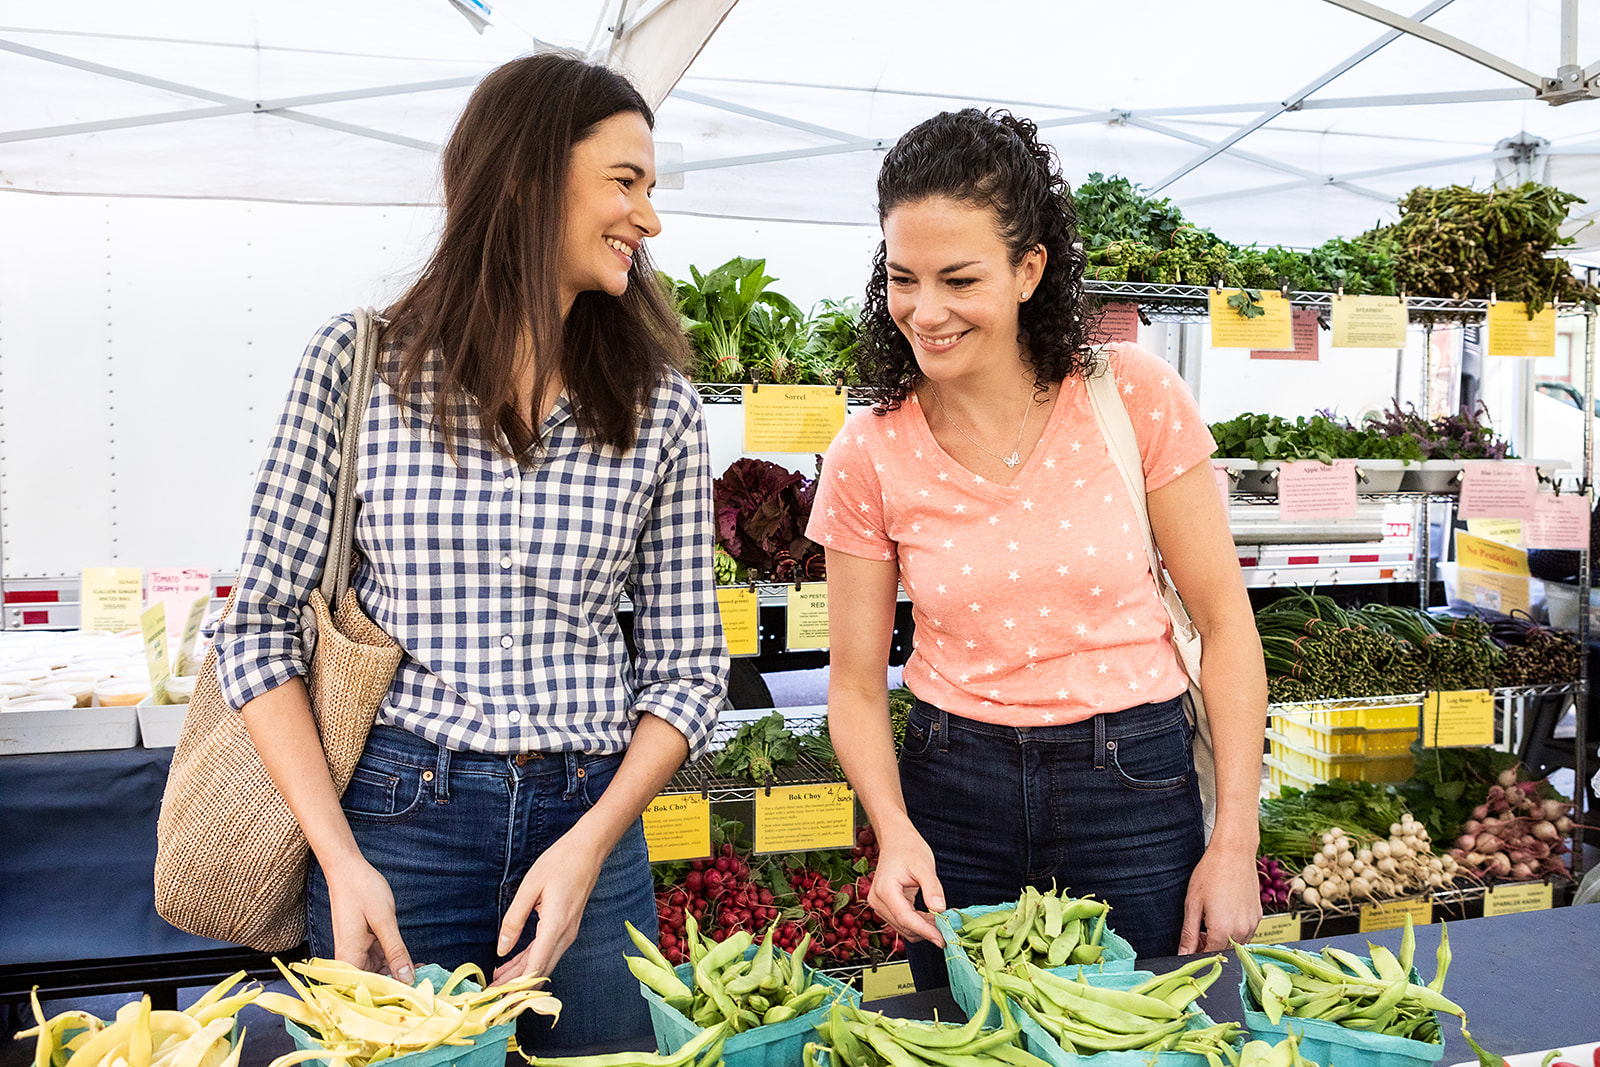 Christine and April laughing at the farmer's market